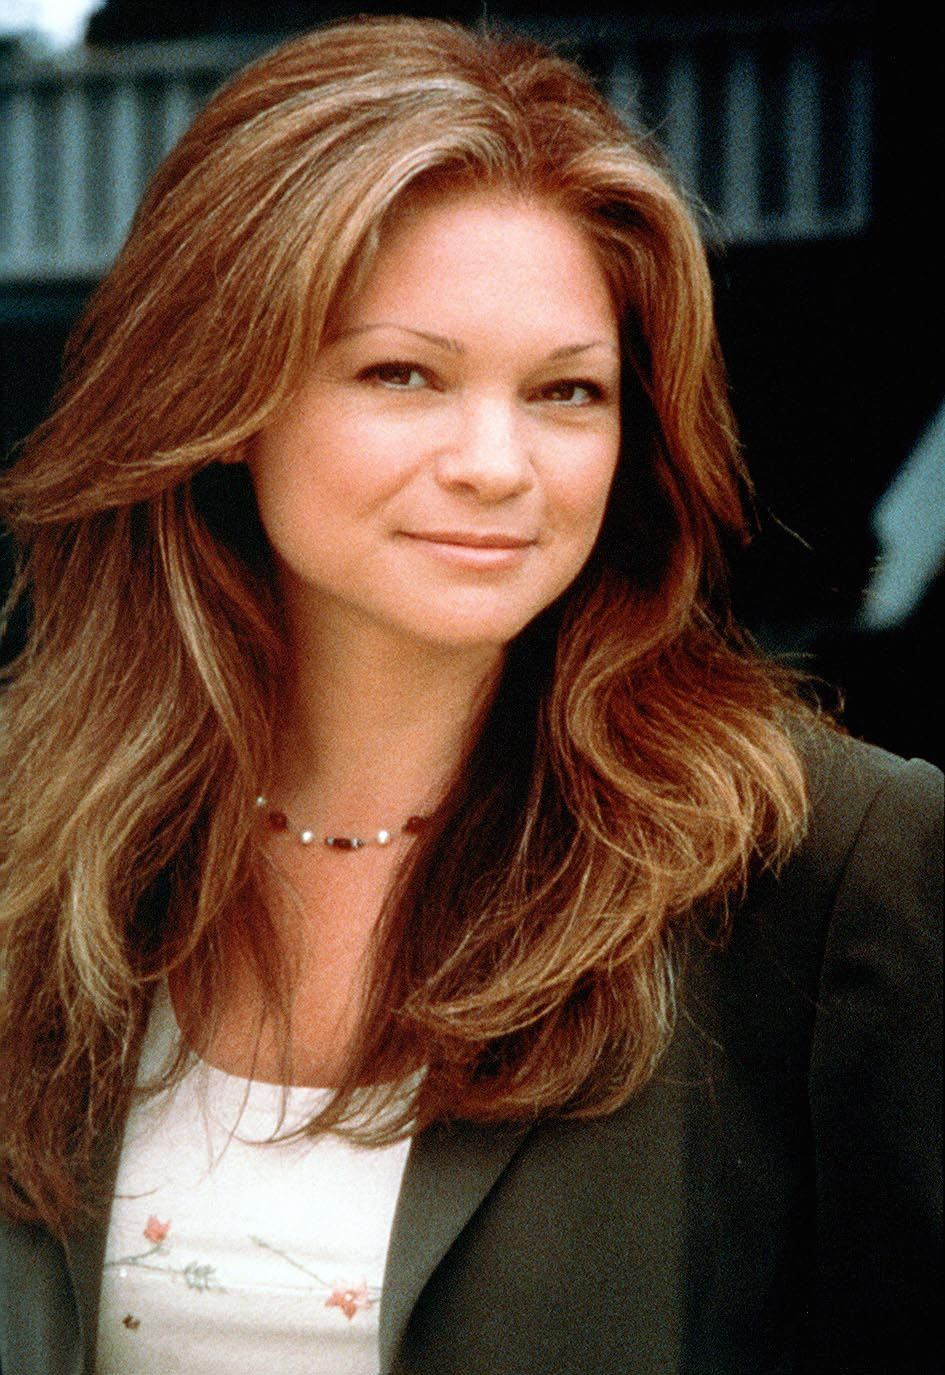 Hottest Actresses Over 50 Over 50 Actresses That Are Hot Page 2 Pirate4x4 Com 4x4 A Blonde Actresses Valerie Bertinelli Hair Highlights And Lowlights